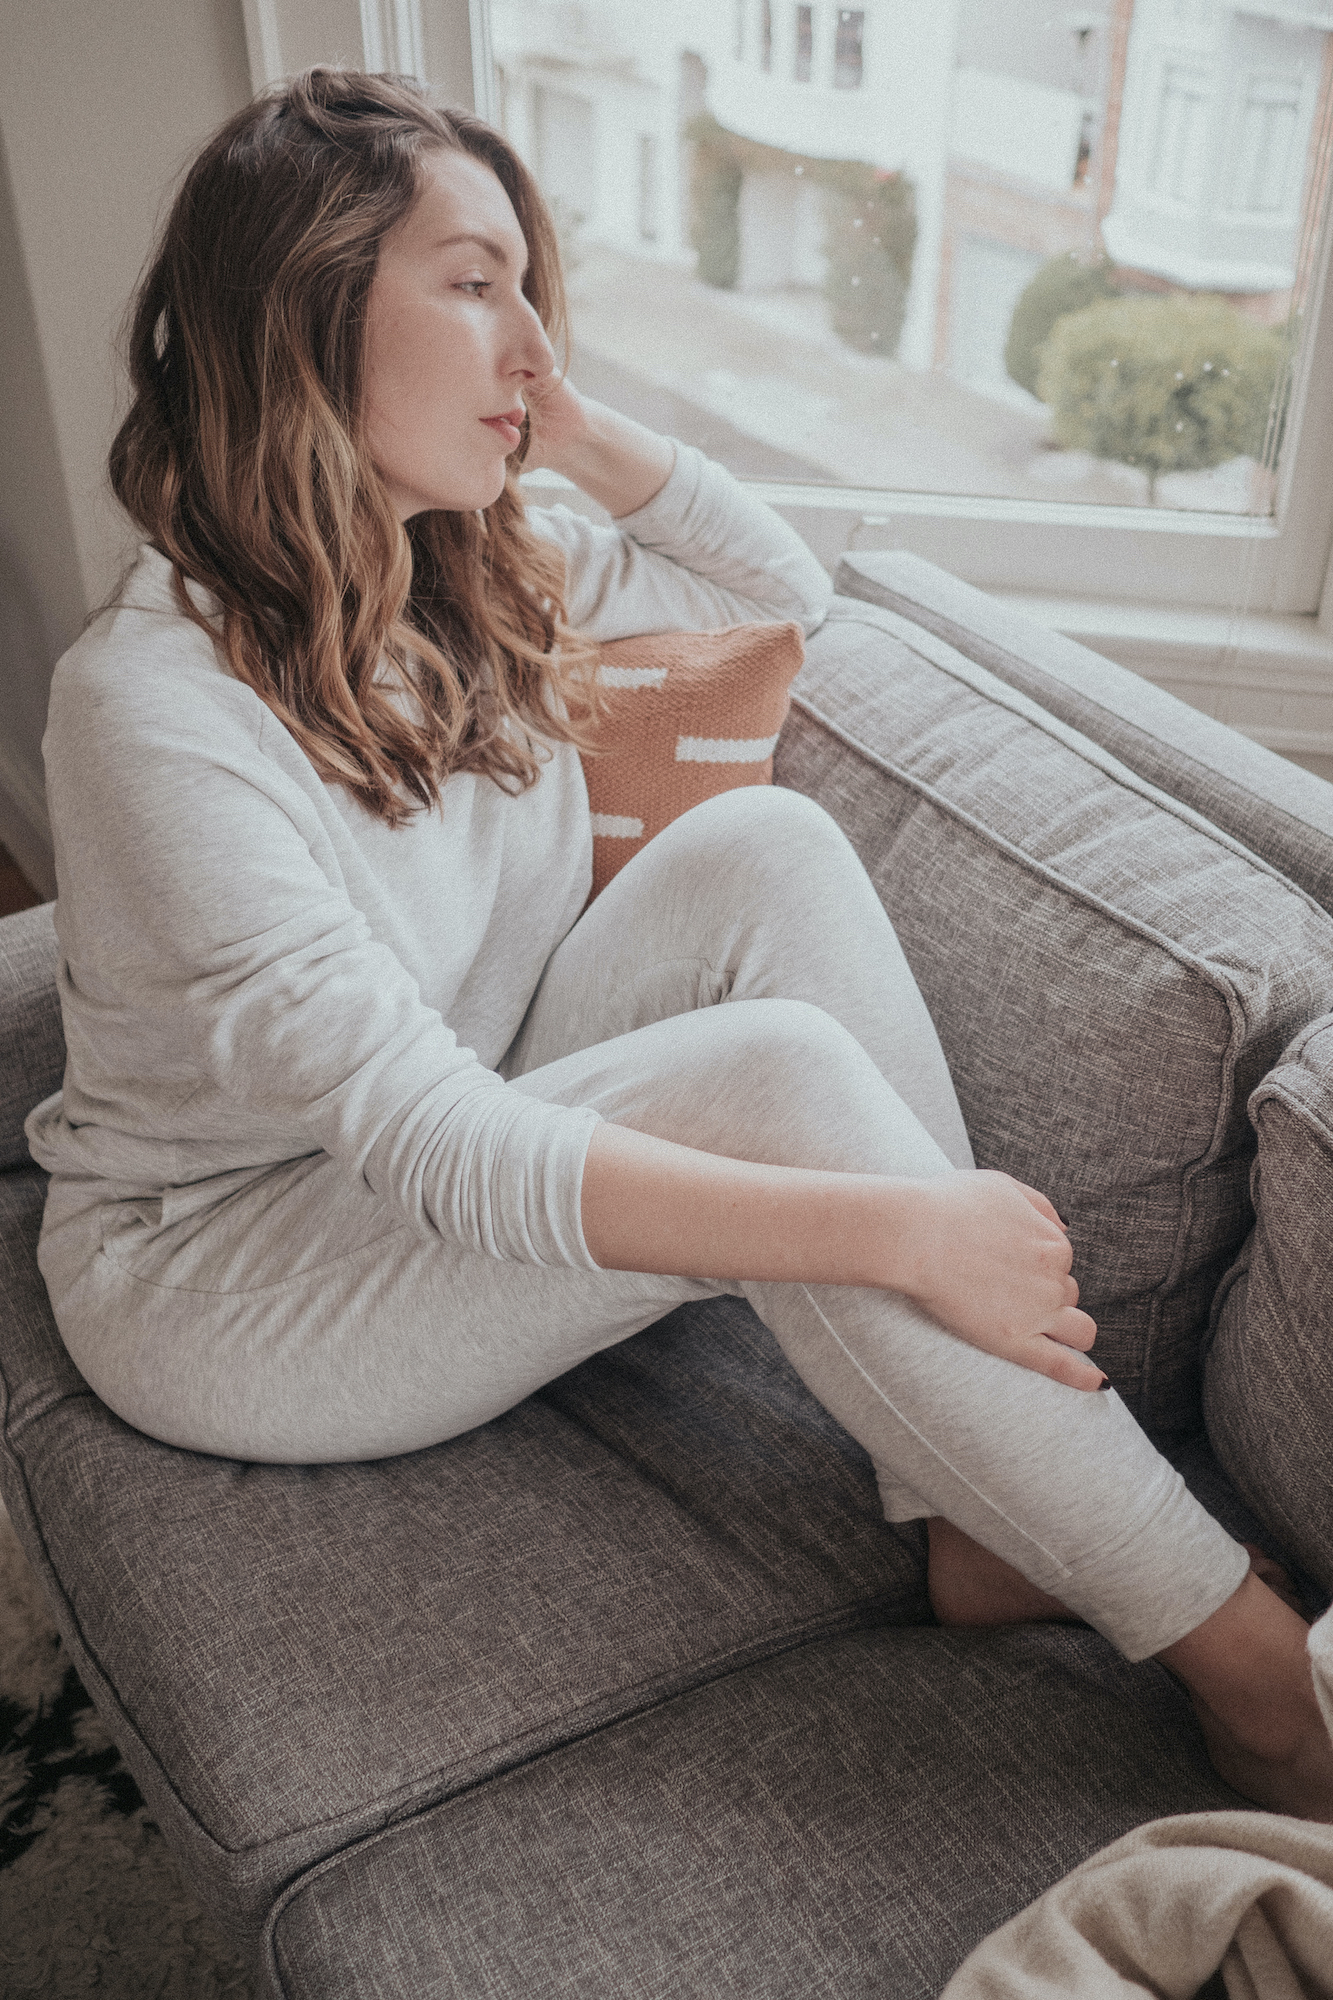 Erin Pollard sits on an unmade bed, looking out the window, wearing Lou & Grey Signaturesoft Plus Upstate Sweatpants and Sweatshirt in Light Heather Grey